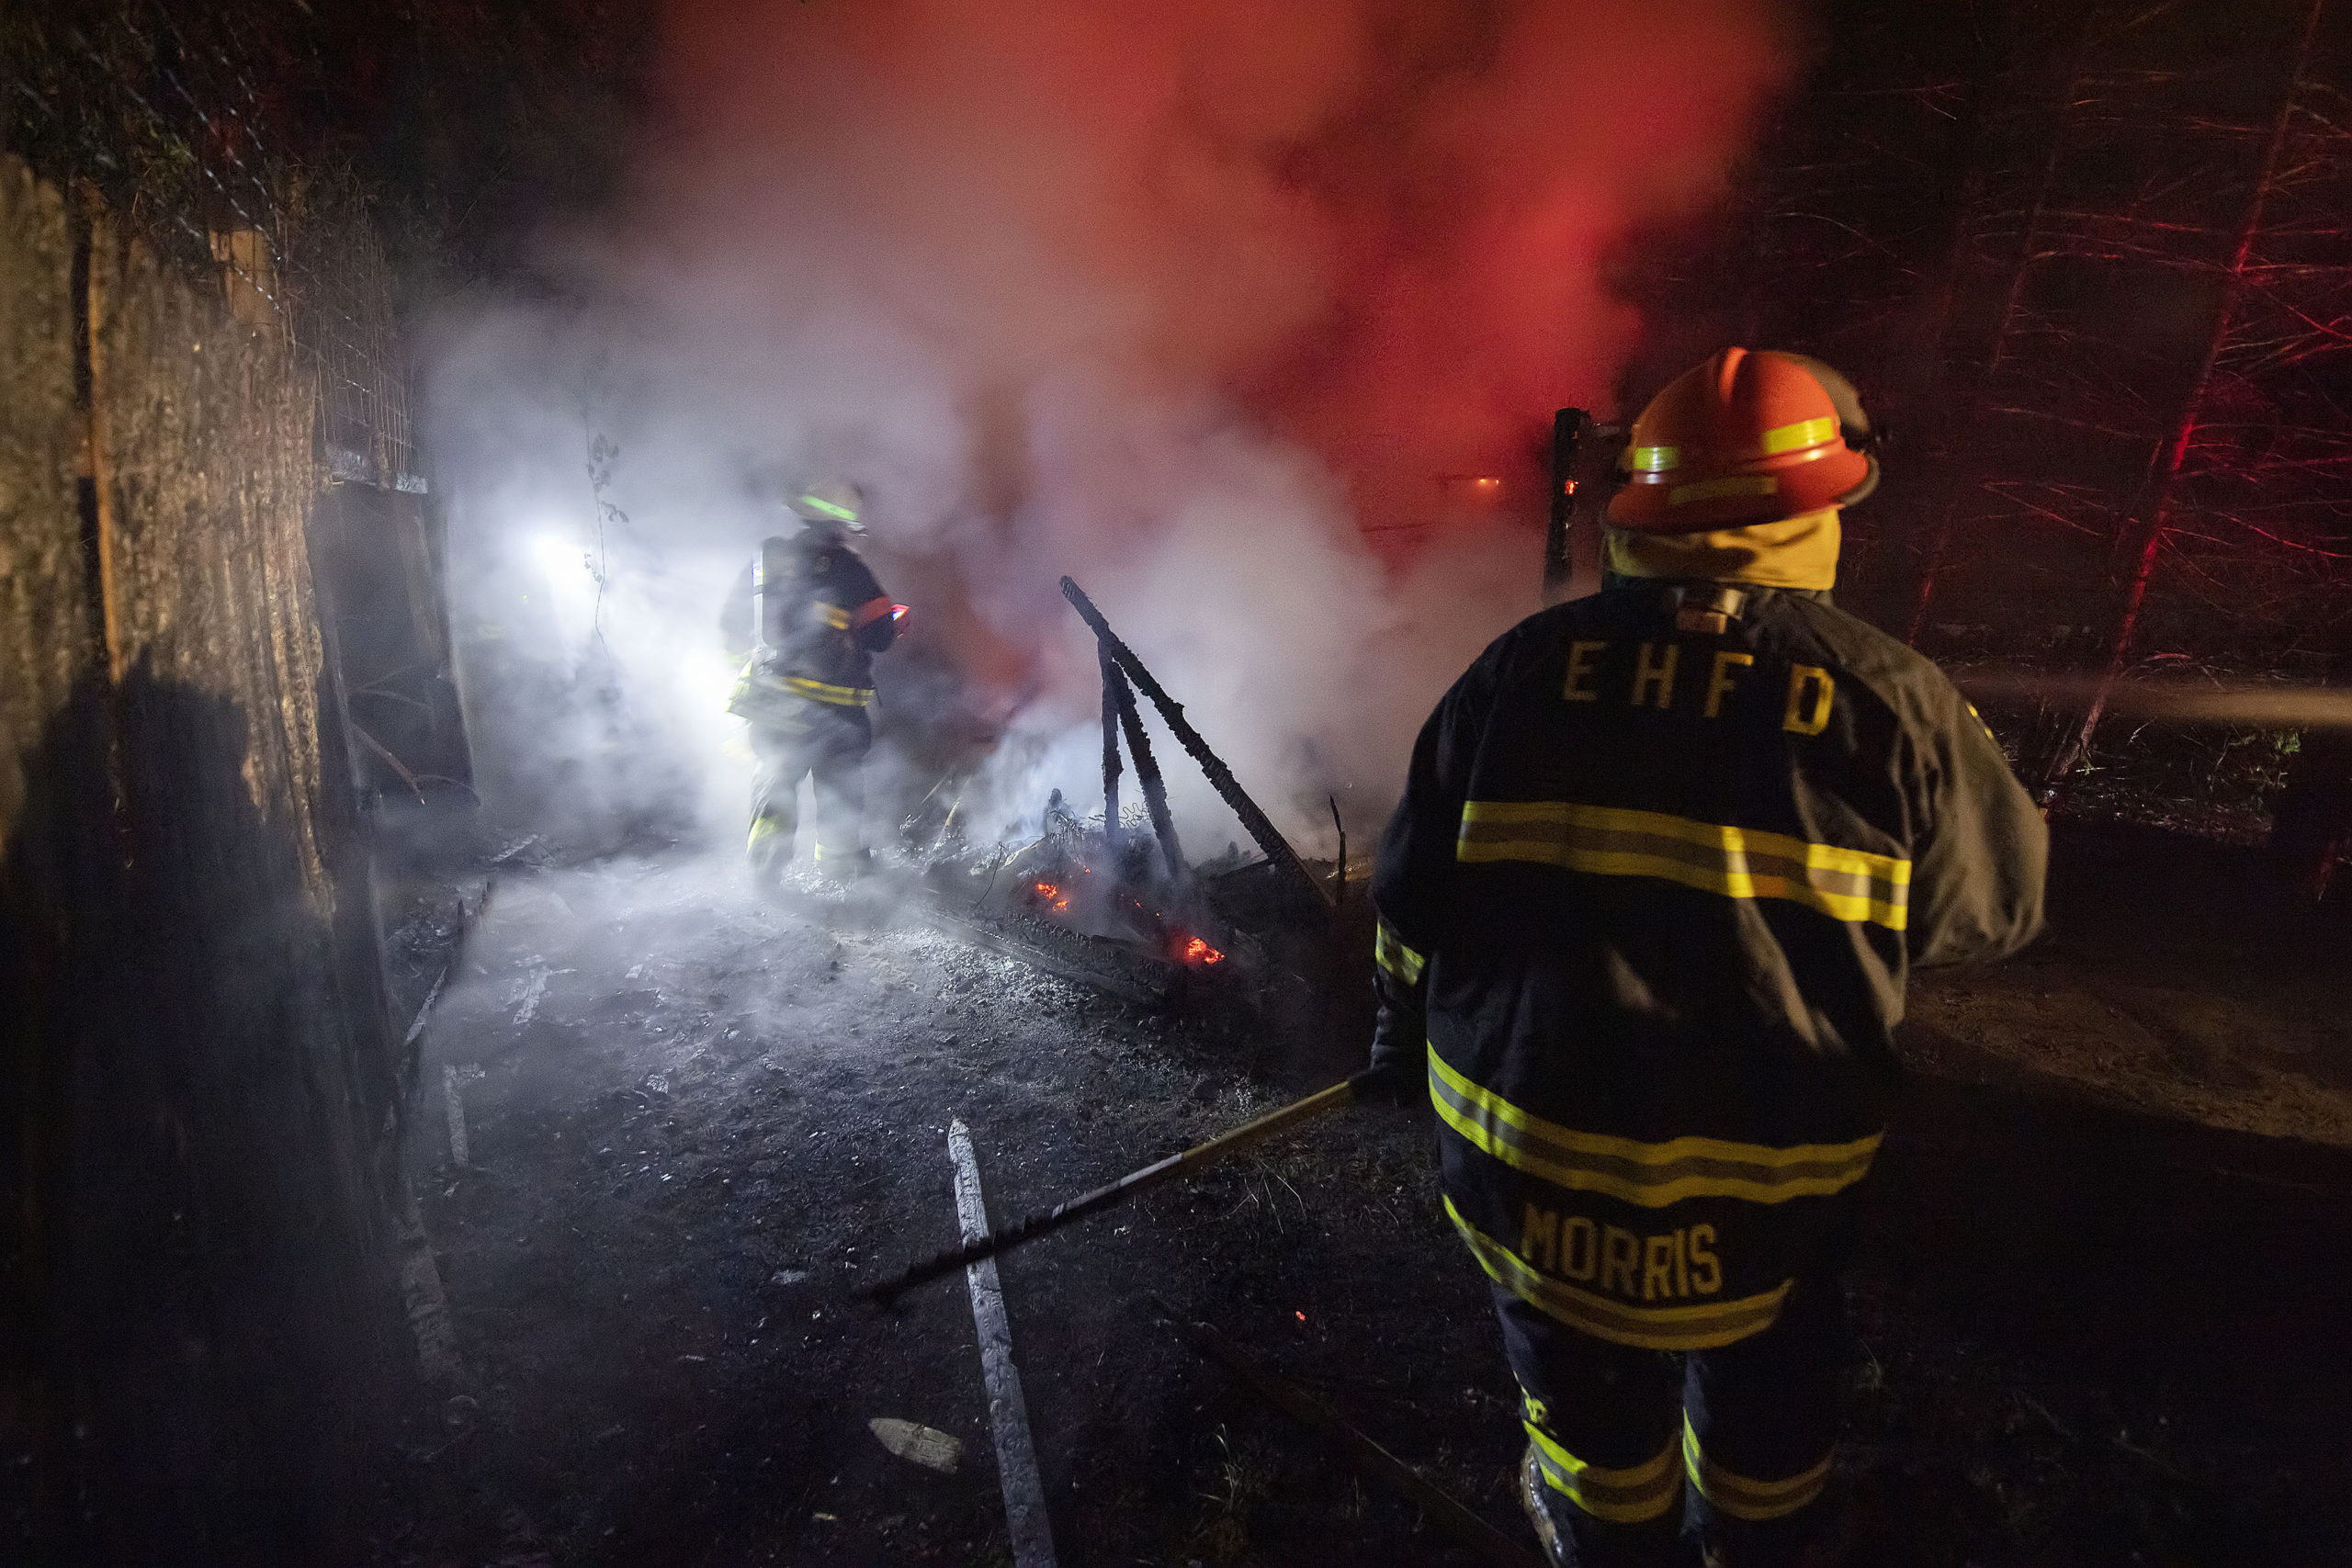 East Hampton firefighters were called out to extinguish a fire that destroyd a shed on Cove Hollow Road in East Hampton late June 17. MICHAEL HELLER PHOTOS